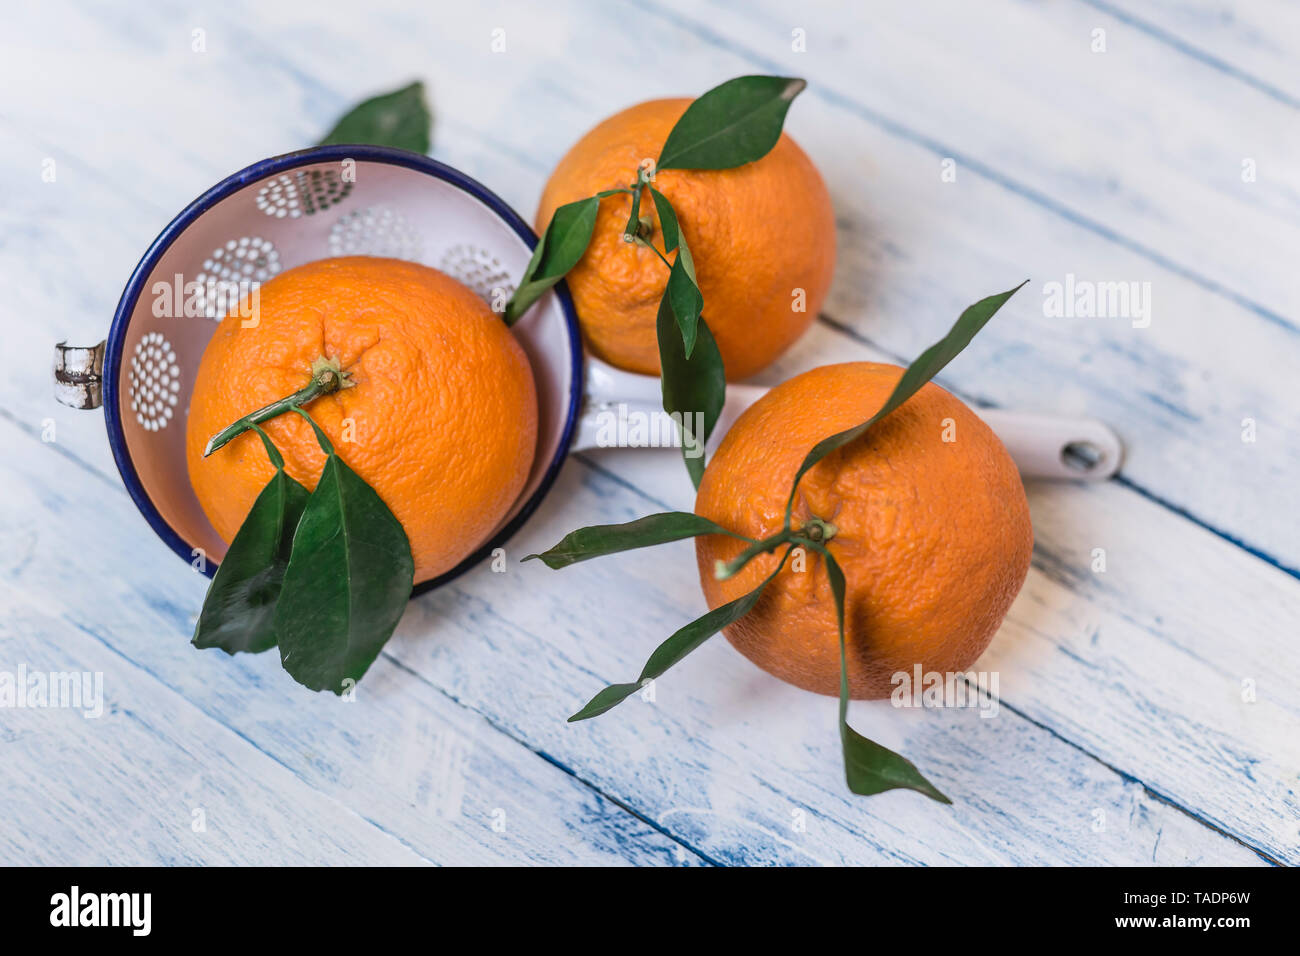 Three oranges with leaves and a colander on wood - Stock Image